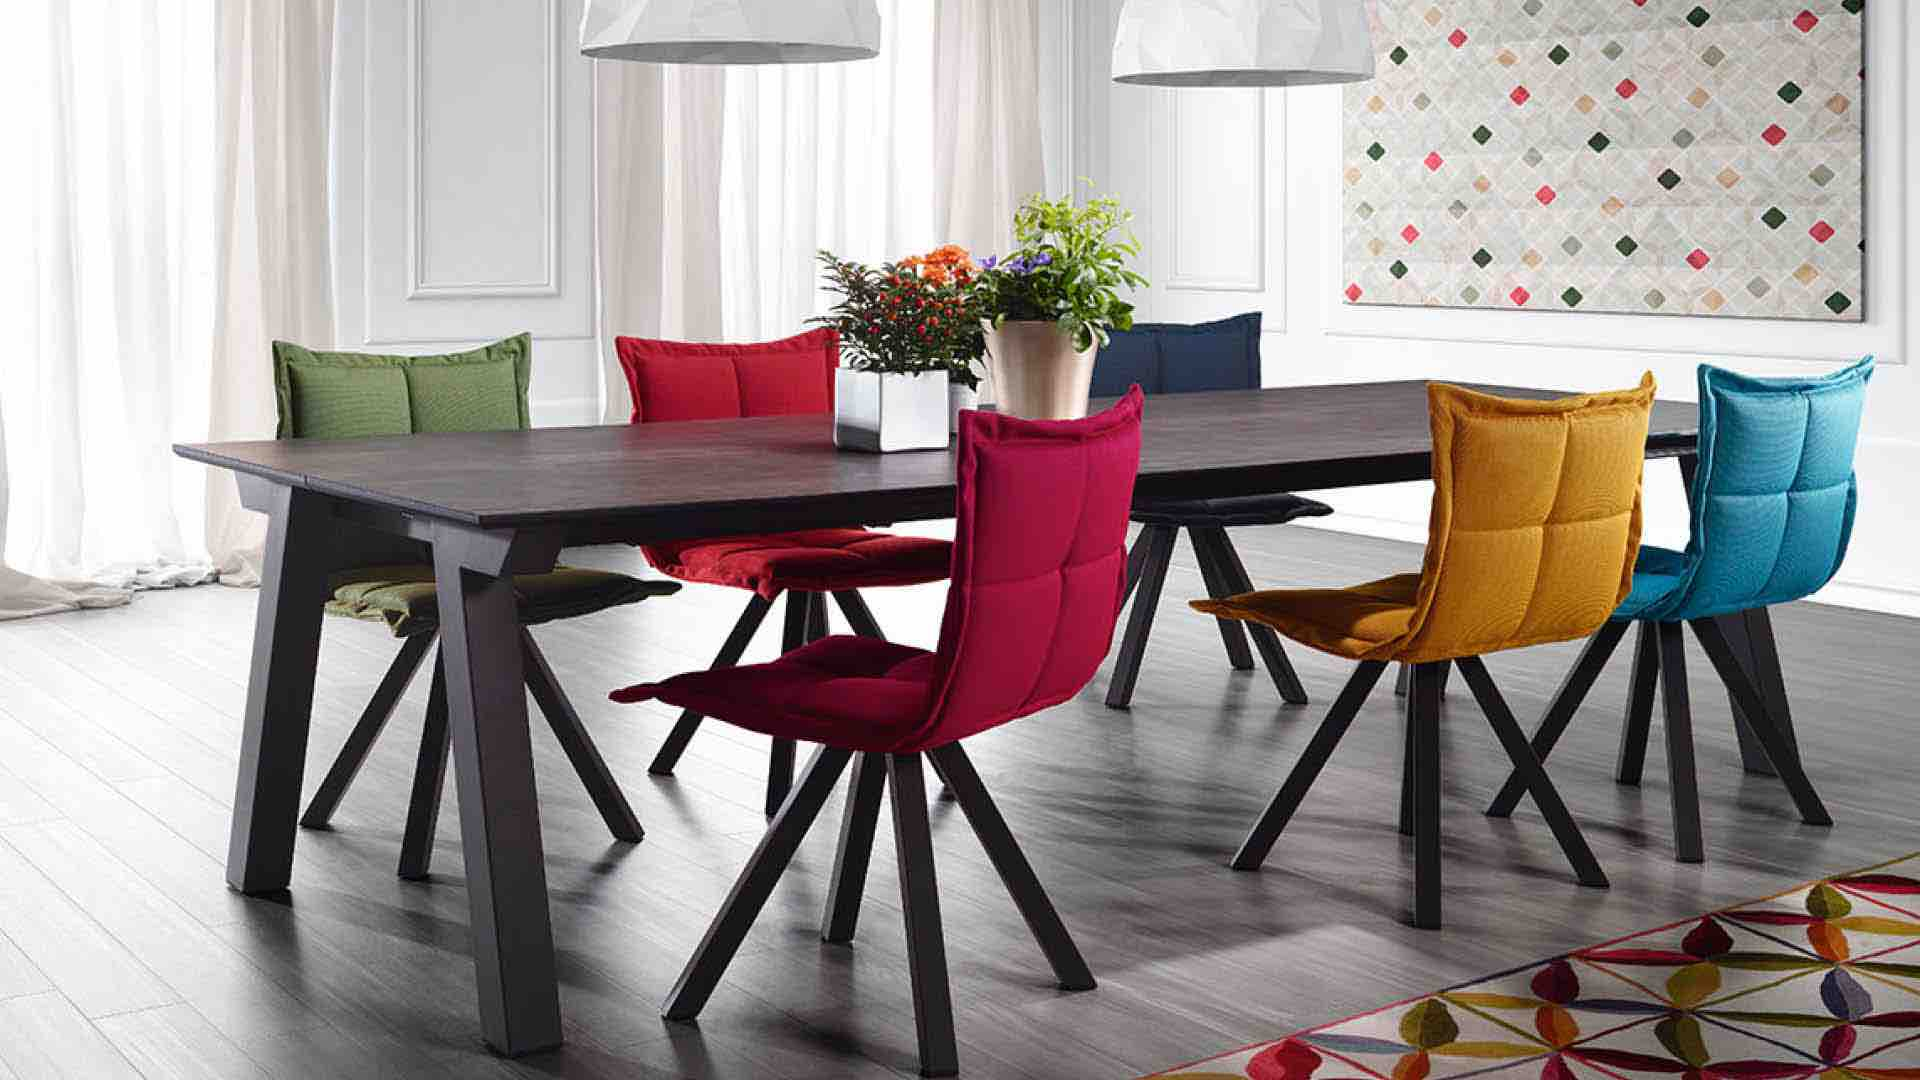 mobilier-design-contemporain-table-soldes